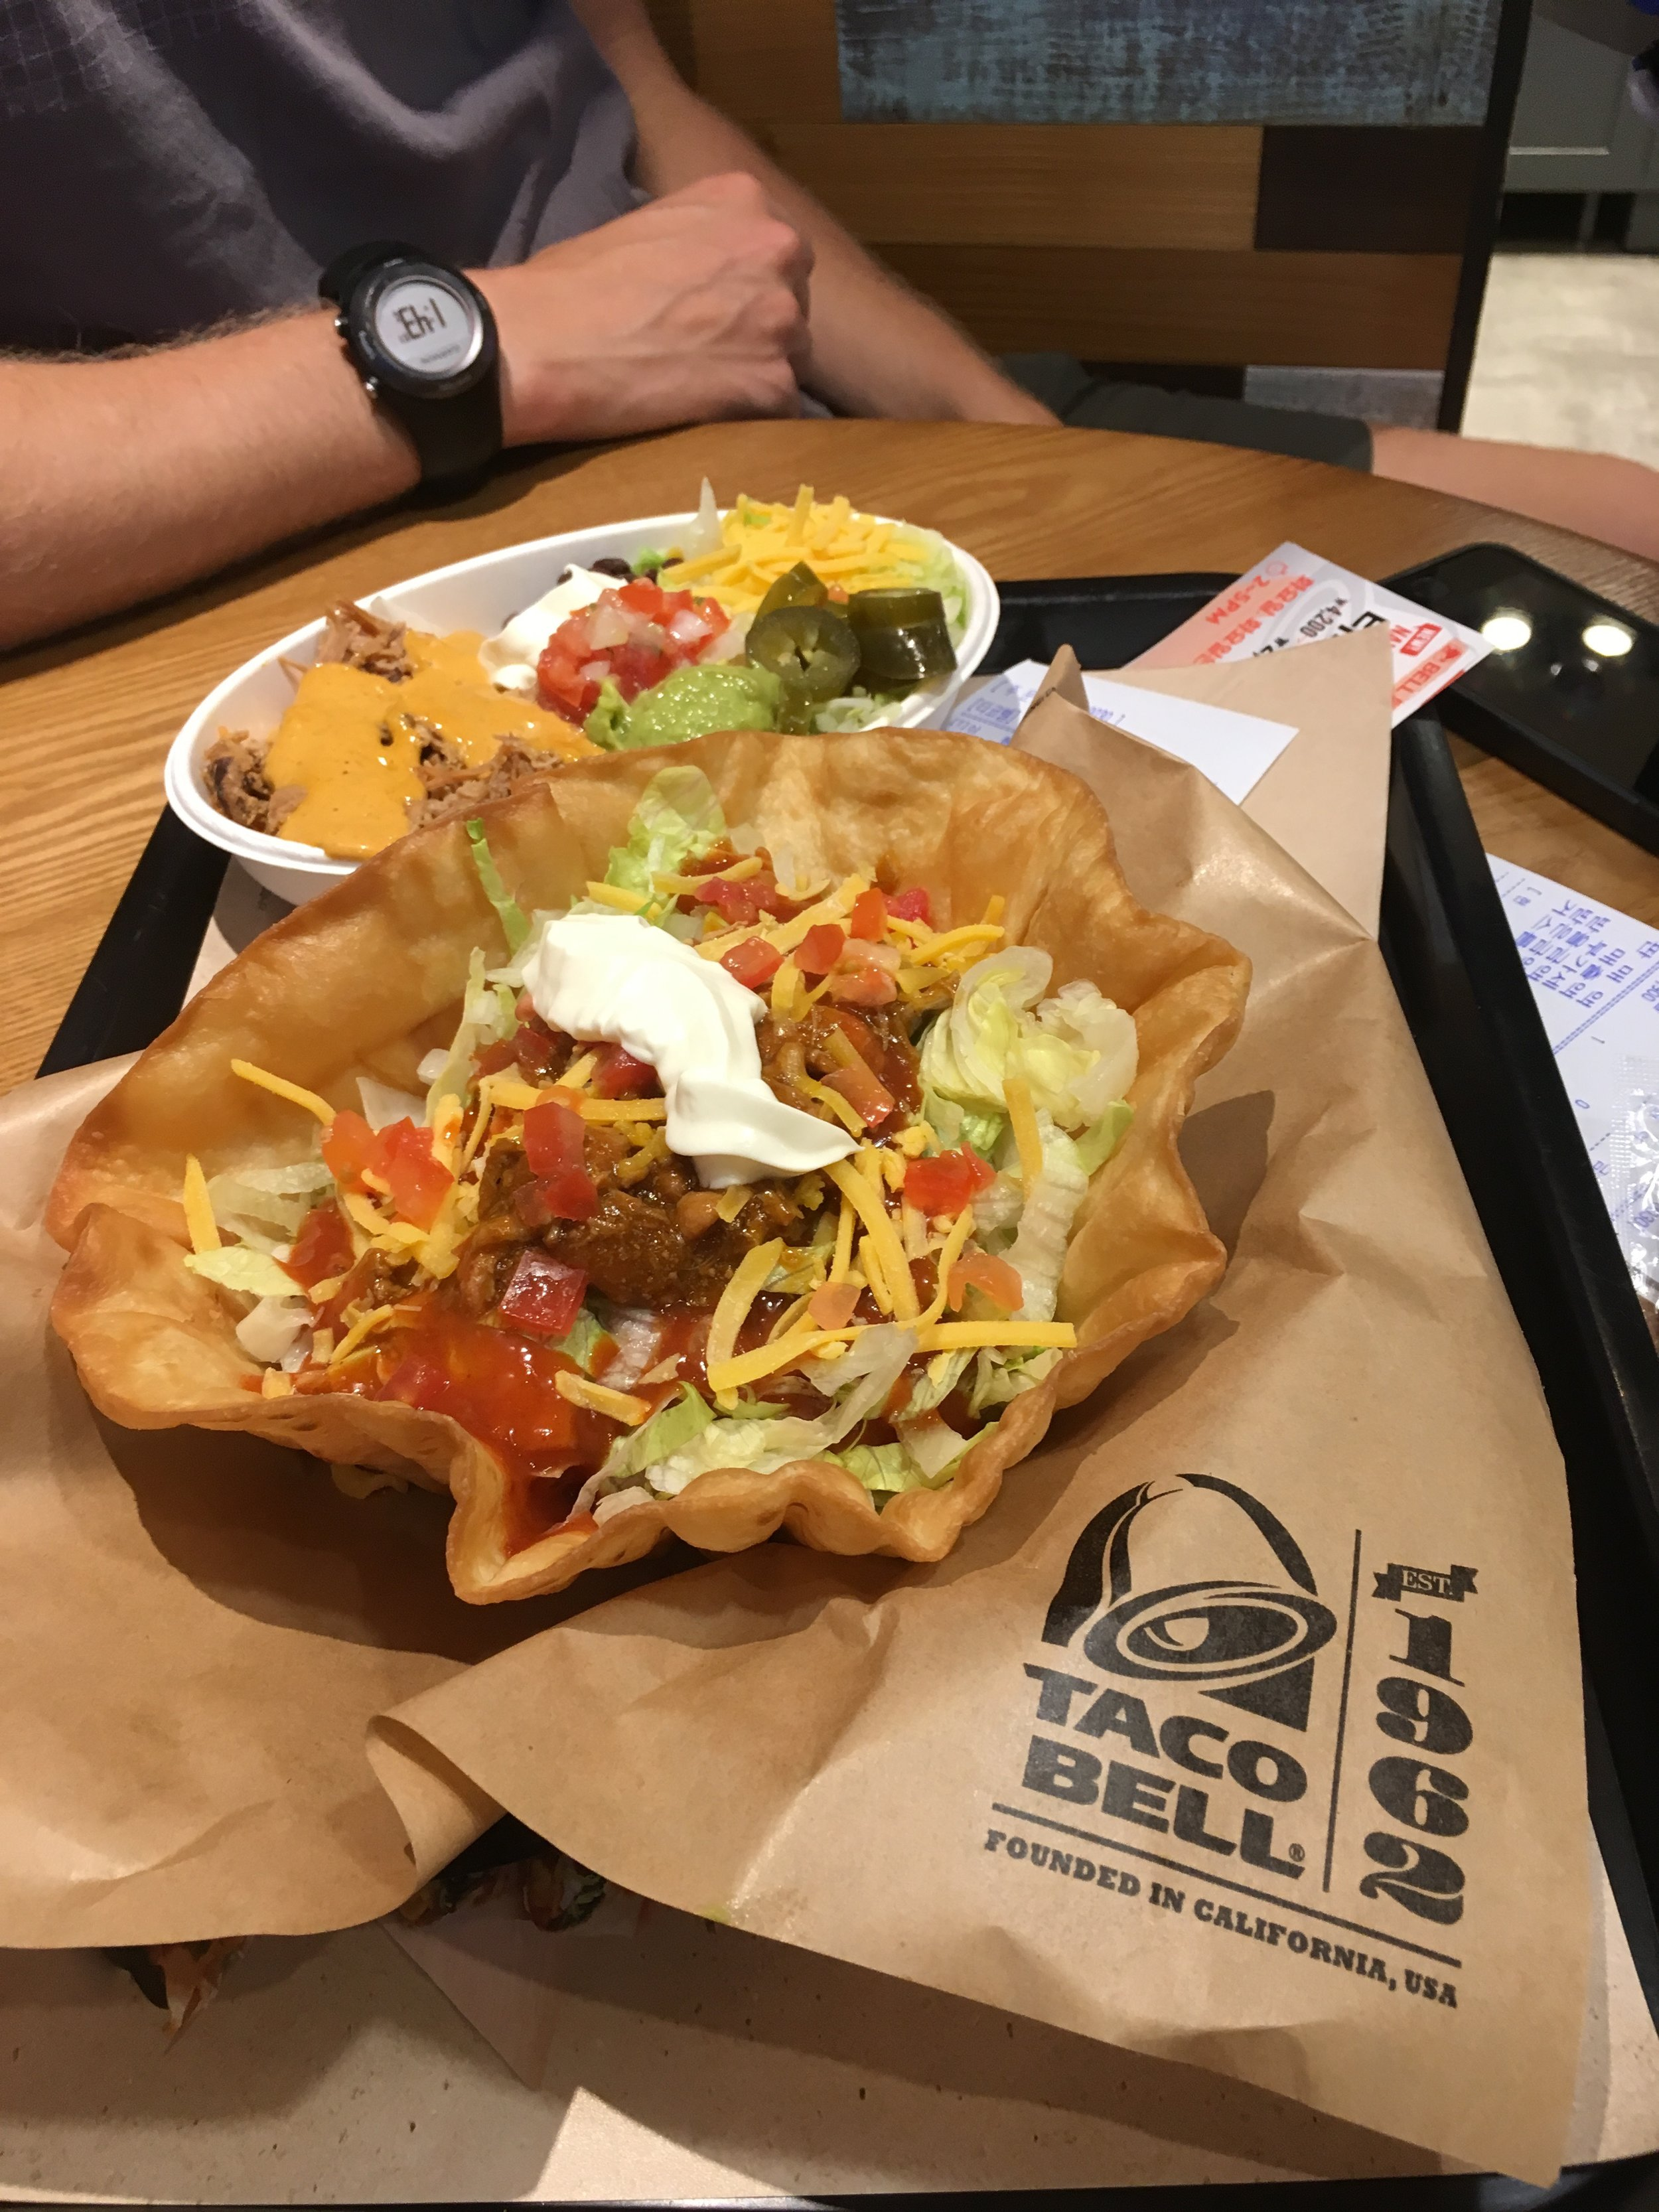 Yes, we got Taco Bell. No, it wasn't quite the same.